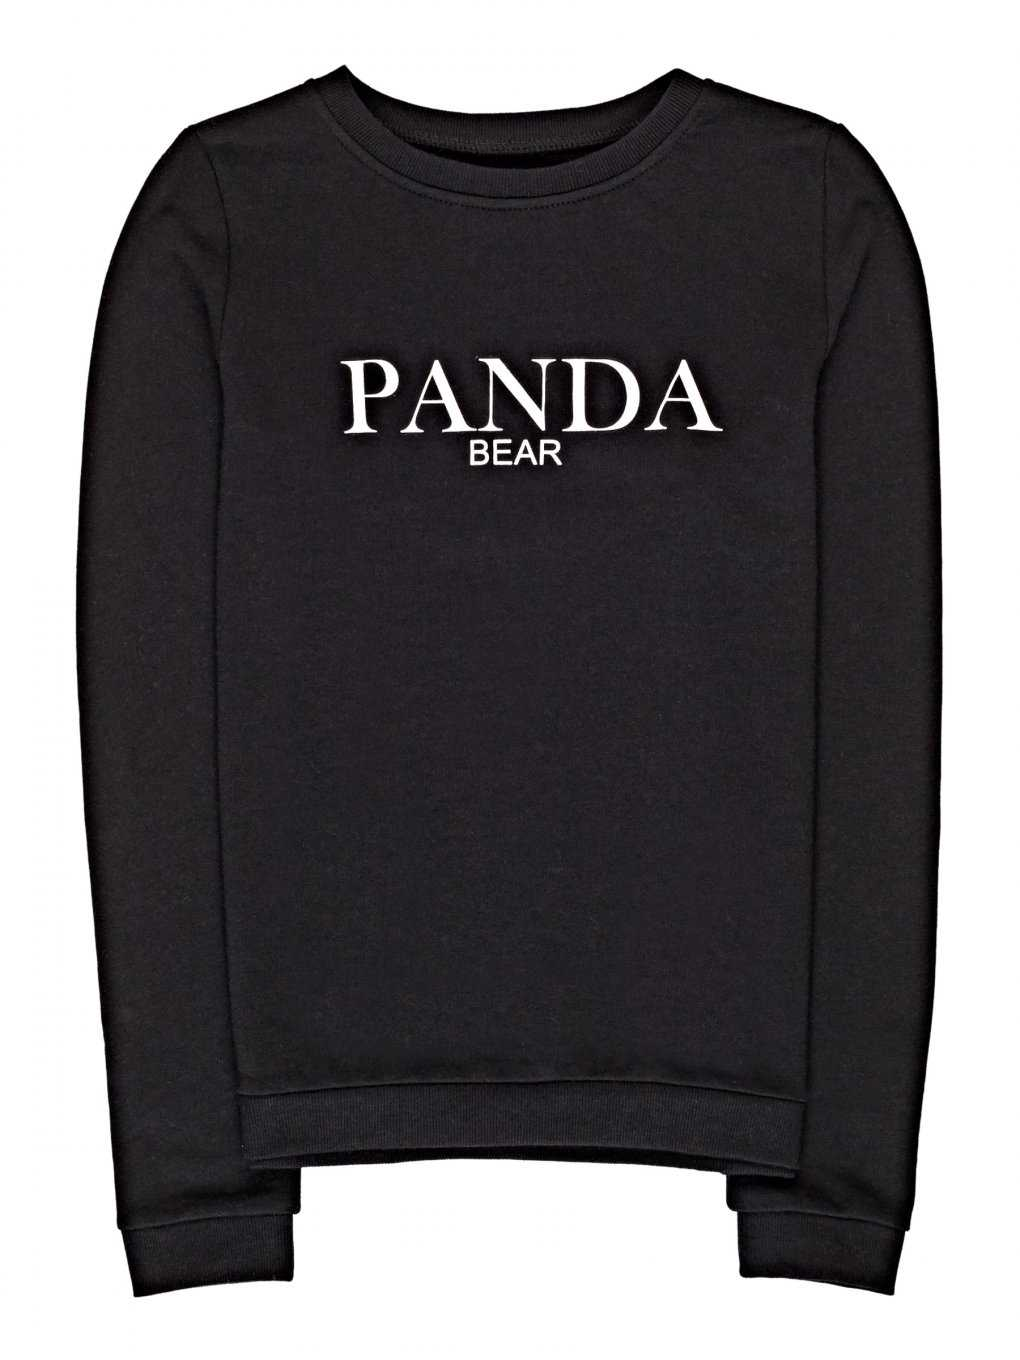 Sweatshirt with print